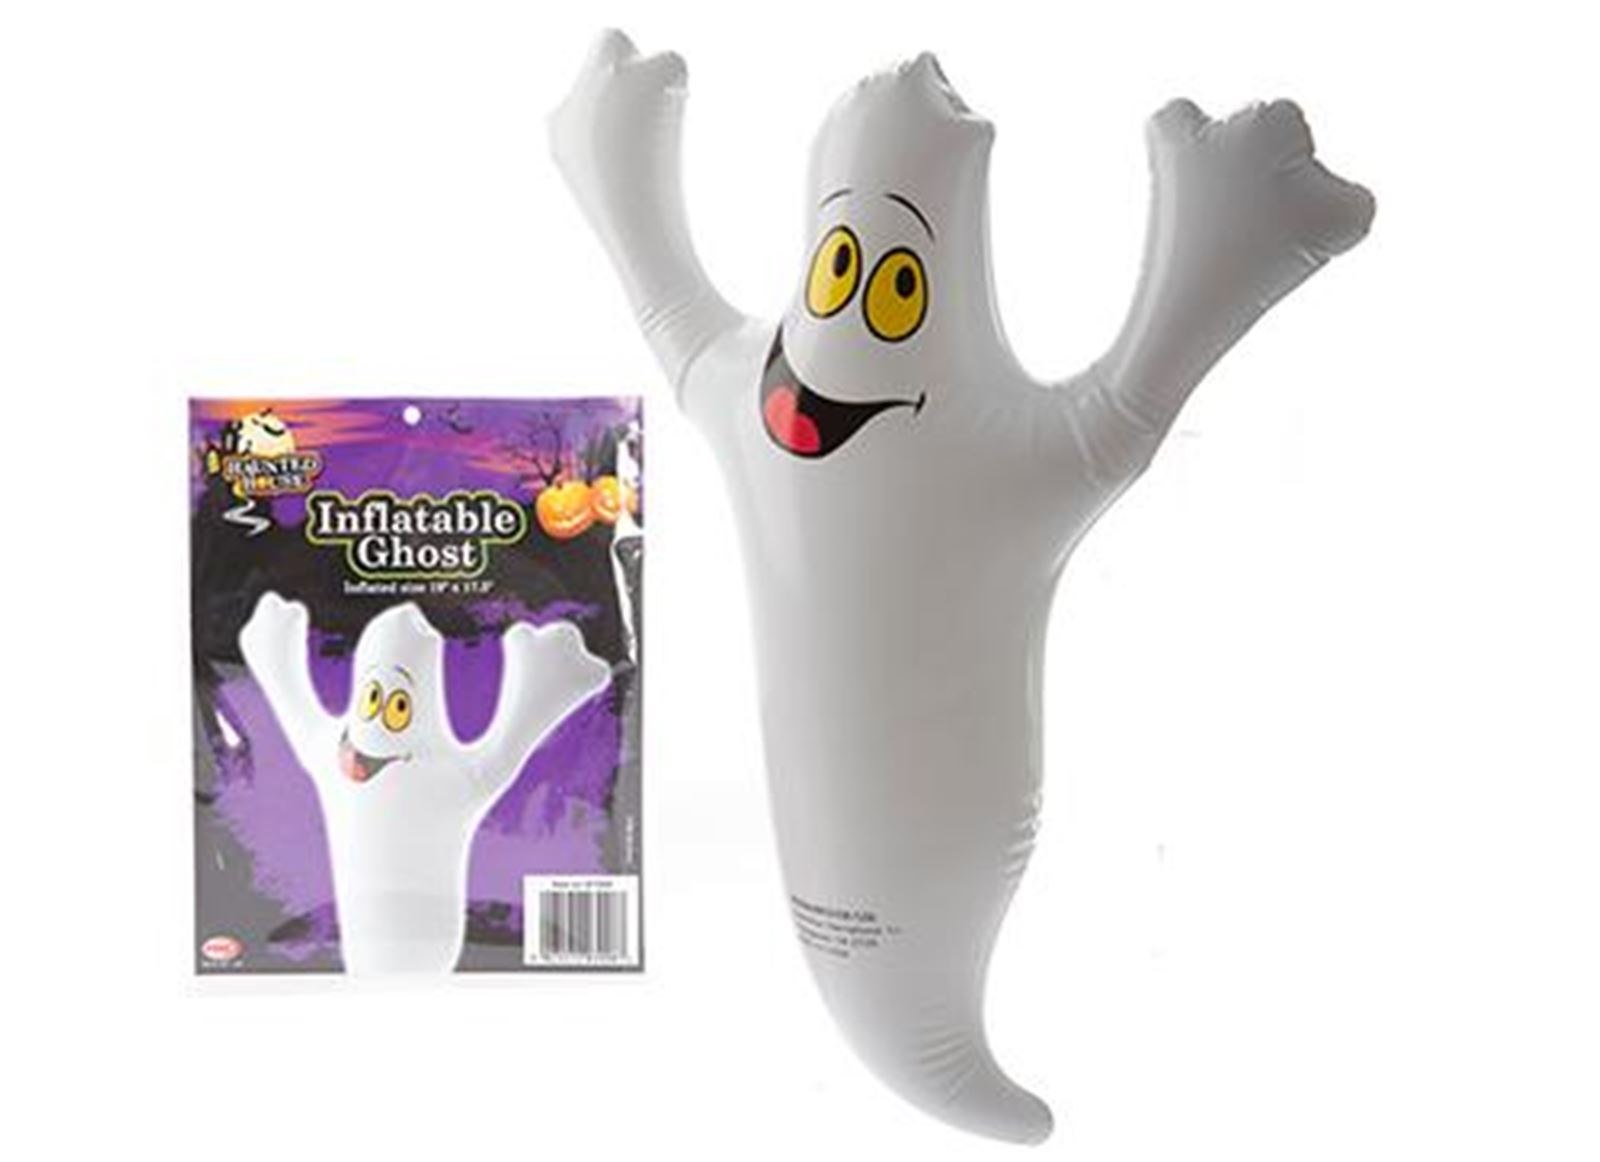 Inflatable Room Halloween Inflatable Room Party Decoration Kids Child Bag Filler